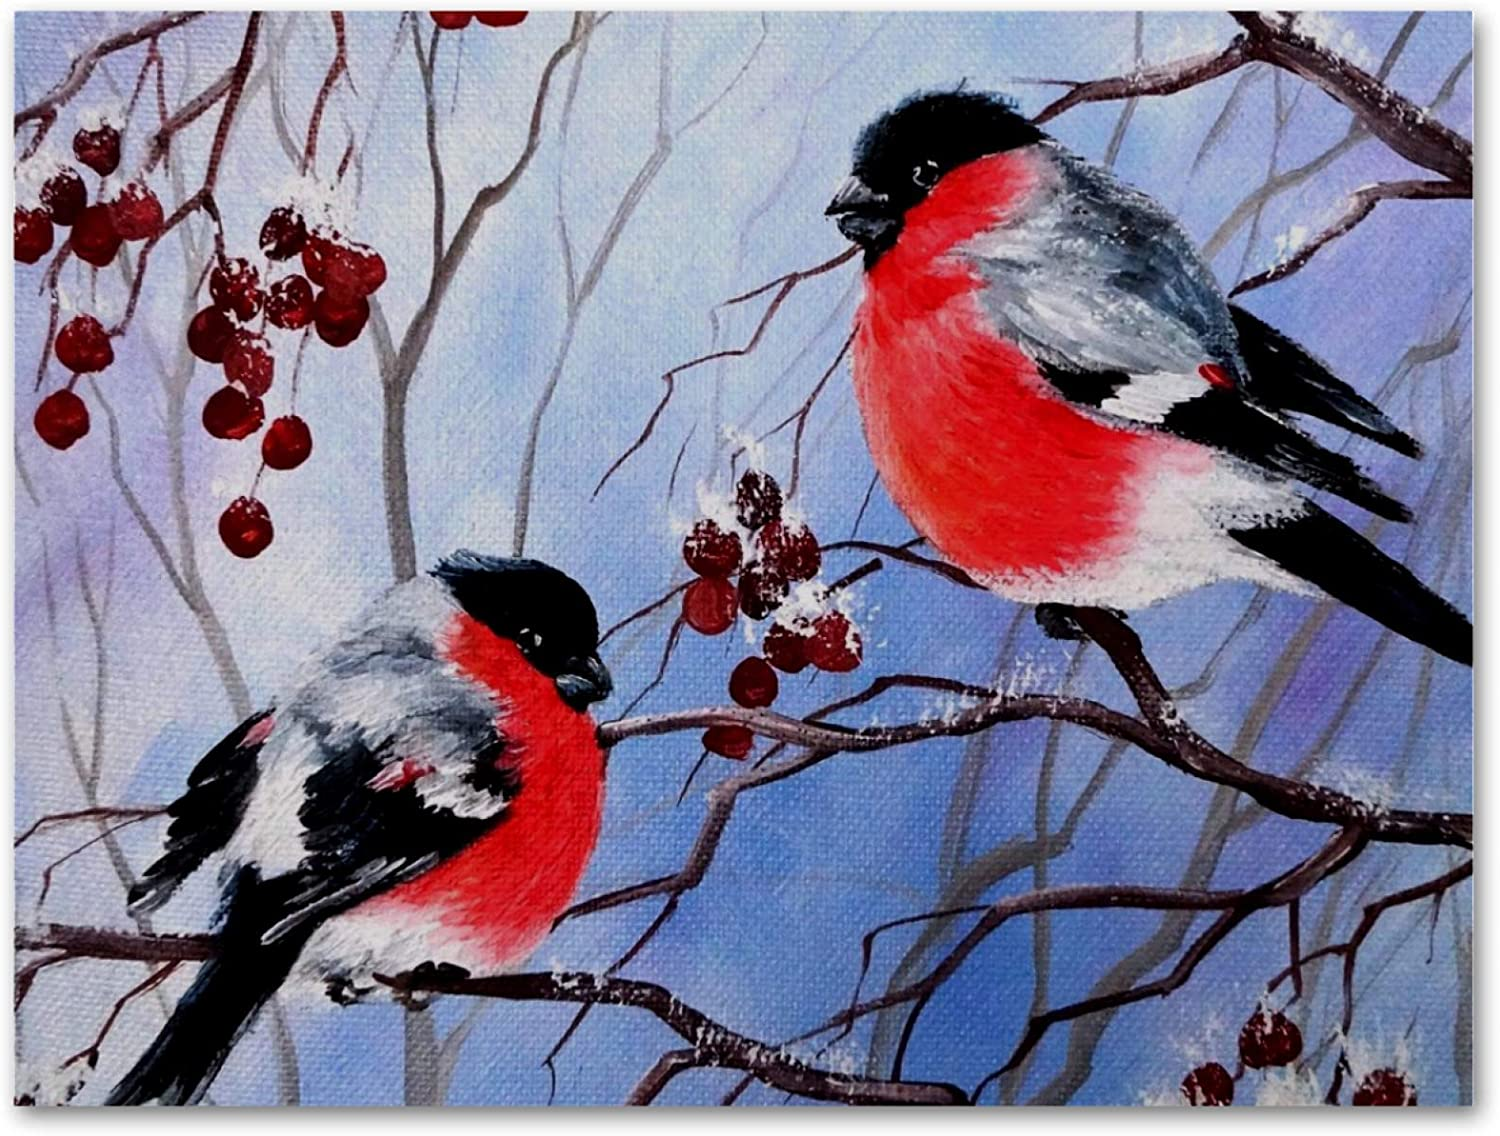 imobaby Oil Painting on Canvas Winter Bullfinch Birds Prints with Wooden Frame for Bedroom Home Living Room Office Modern Wall Art Decor, 11.8x19.6 in